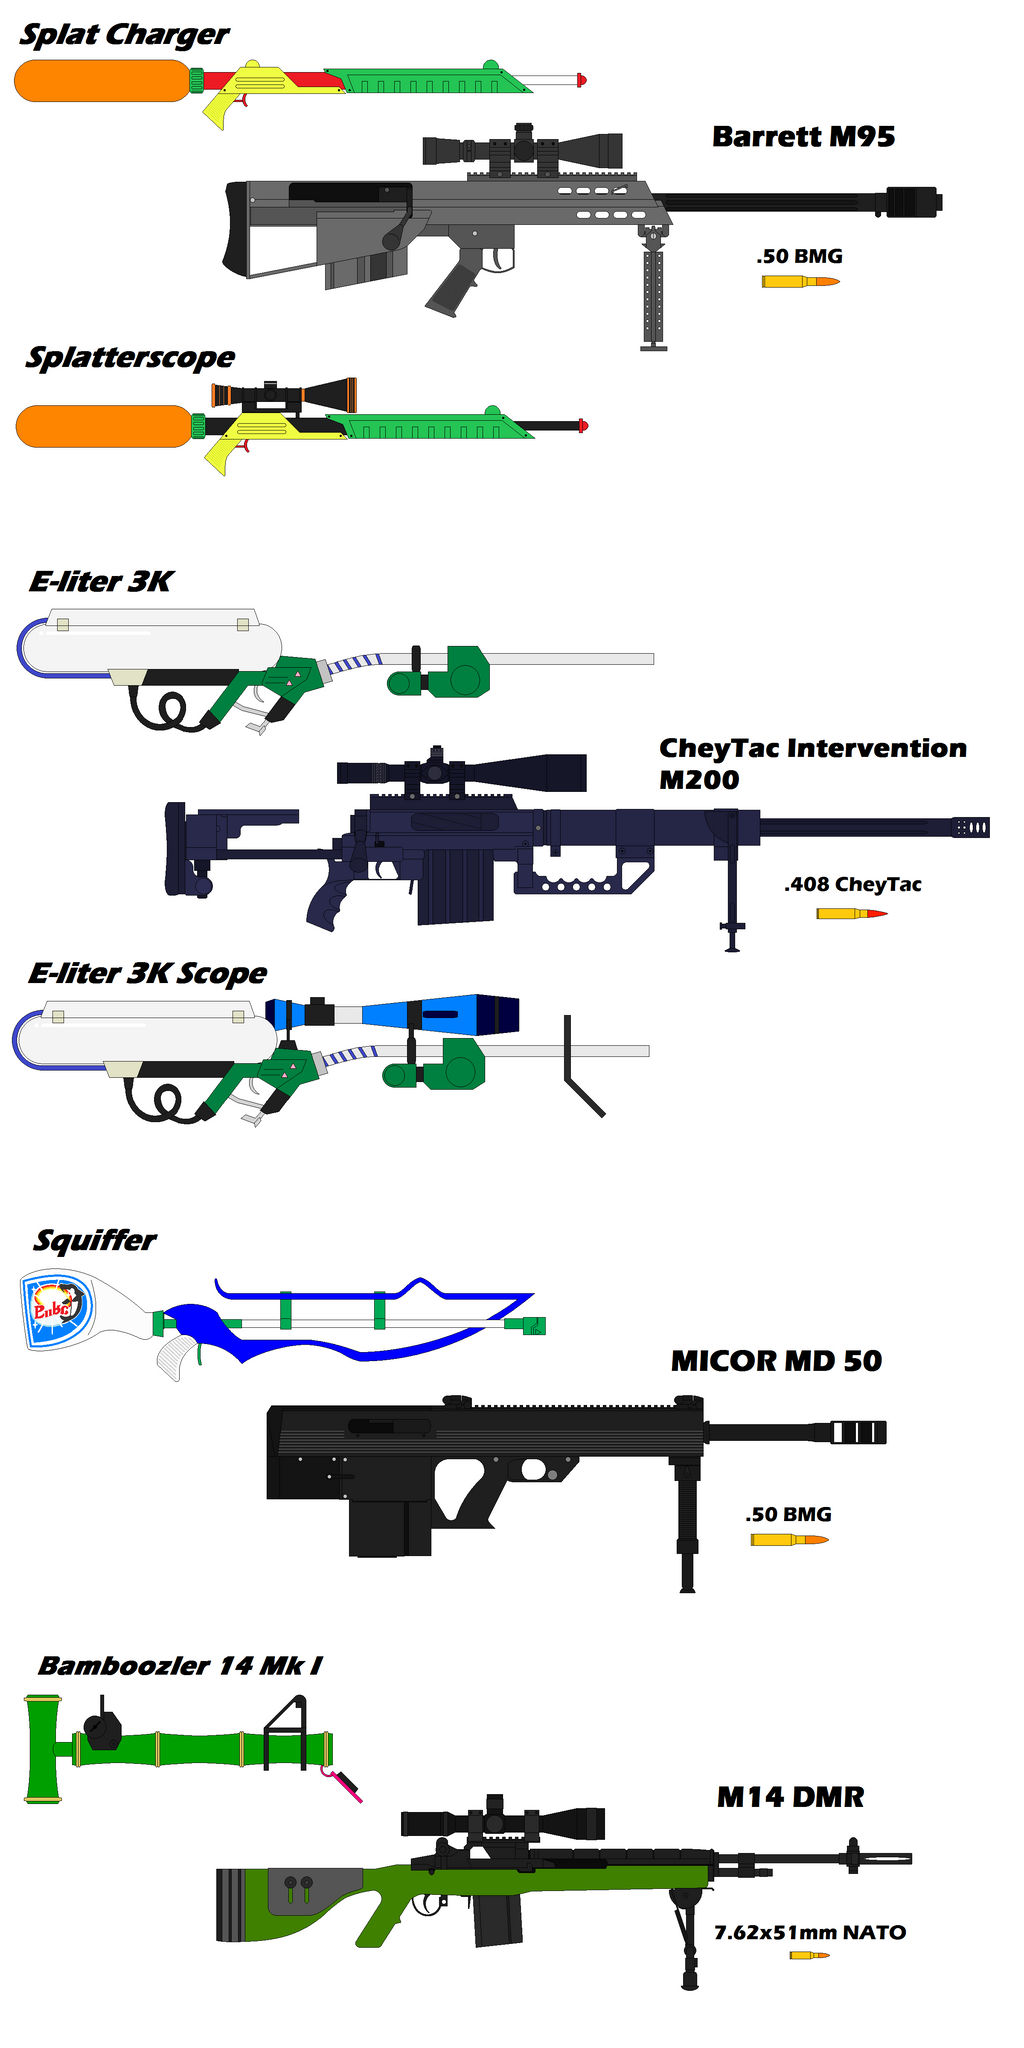 Splatoon vs Real life weapons Charger by VASH581 on DeviantArt